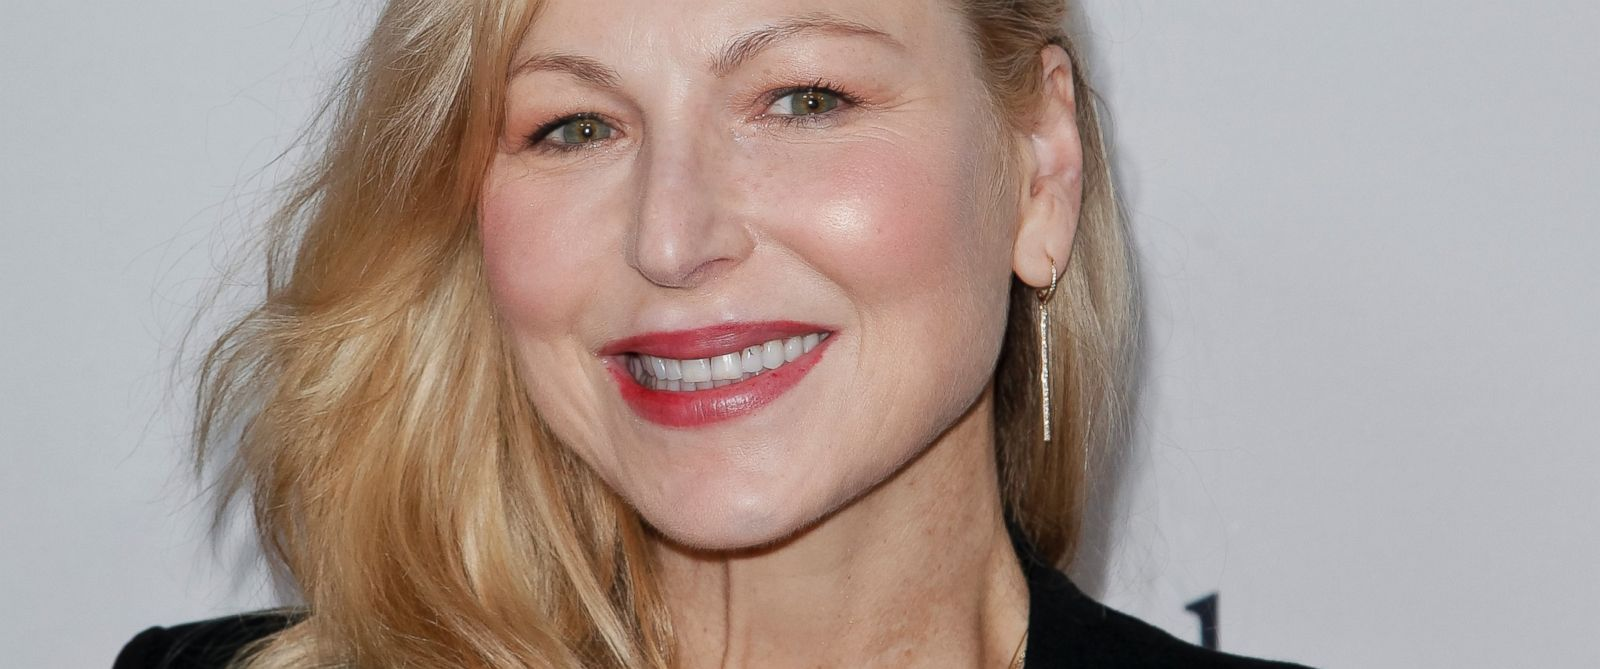 PHOTO: Tatum ONeal attends the USC Institute of Urology Changing Lives And Creating Cures Gala on Nov. 20, 2014 in Beverly Hills, Calif.